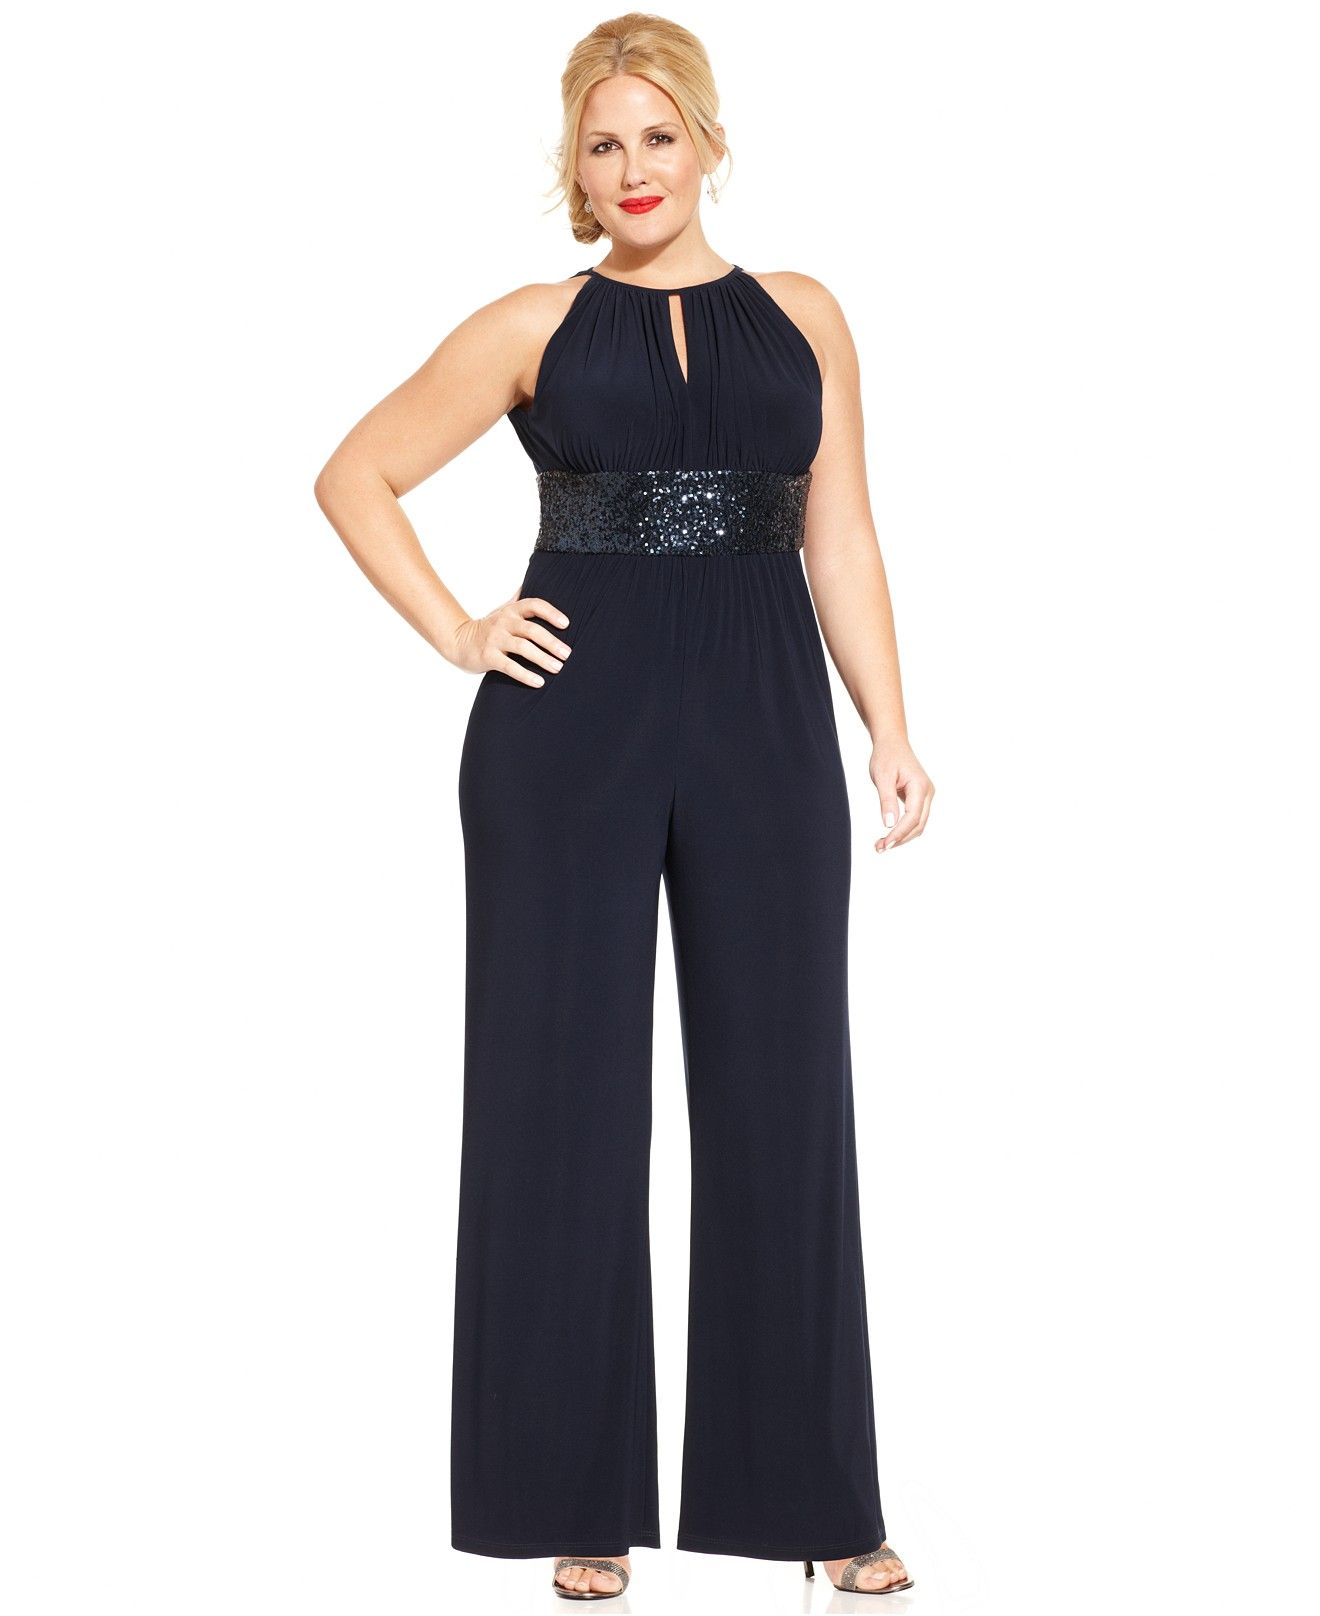 07933551ded4d R M Richards Plus Size Wide-Leg Sequin Jumpsuit - Dresses - Plus Sizes -  Macy s